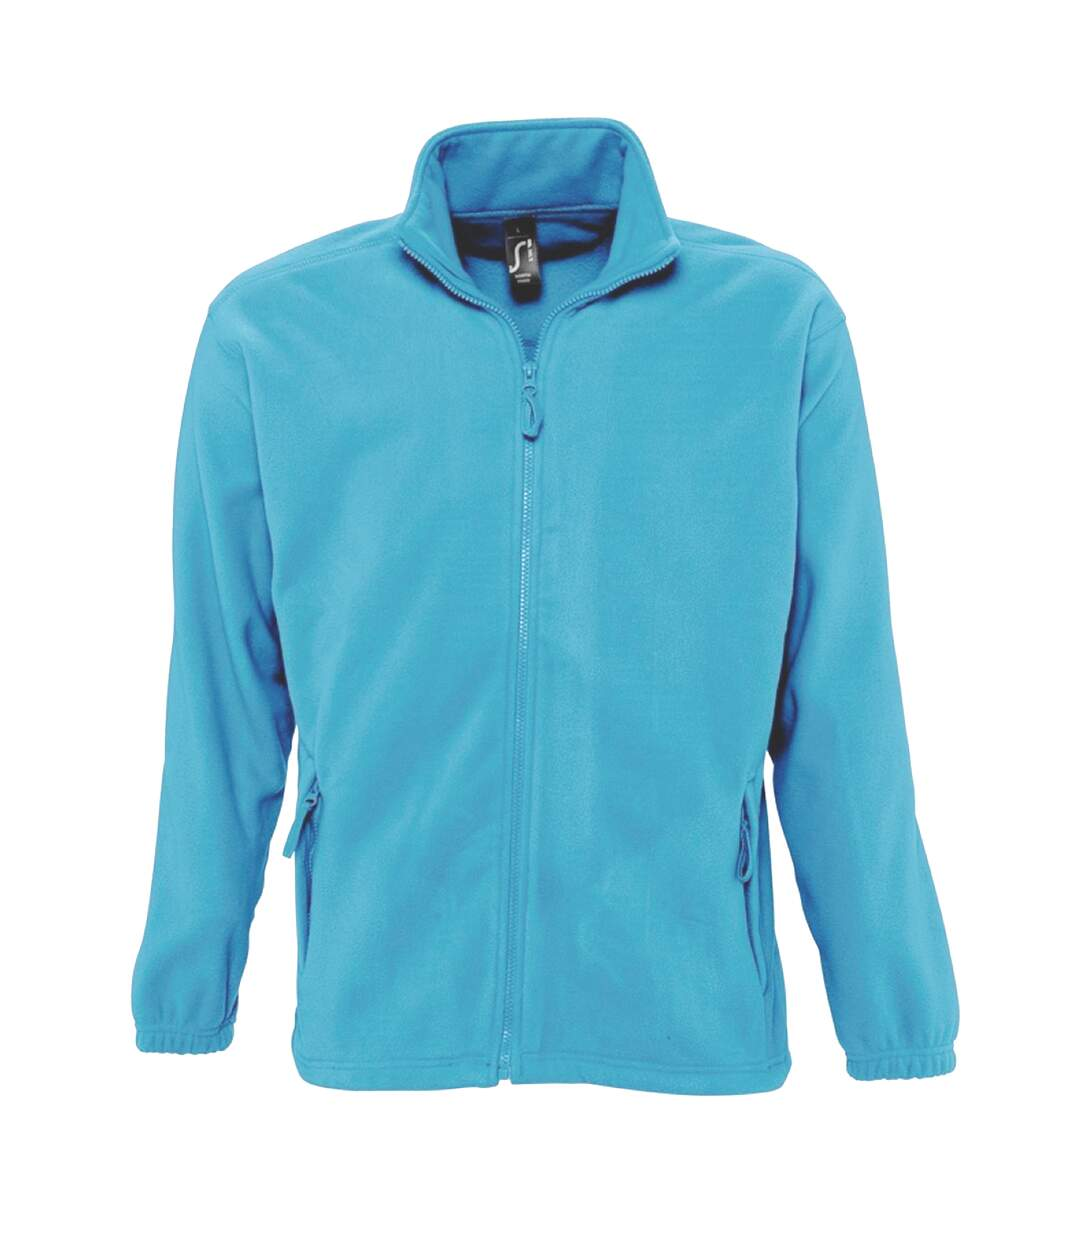 SOLS Mens North Full Zip Outdoor Fleece Jacket (Charcoal) - UTPC343